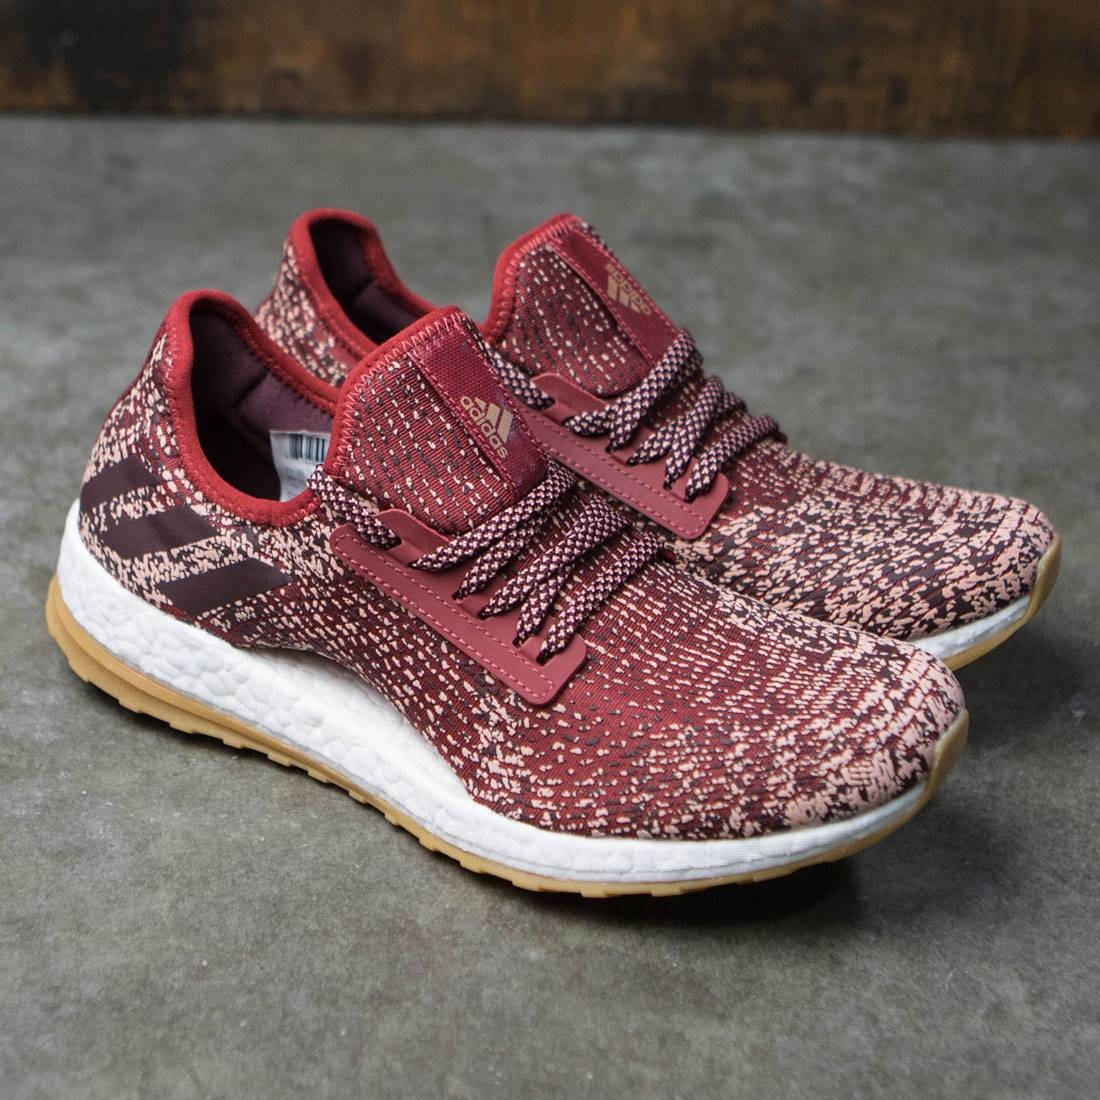 aa8e9d84b4f8f where to buy adidas pure boost x atr 62b66 21b7d  where can i buy adidas  women pureboost x atr red mystery red night red tech rust